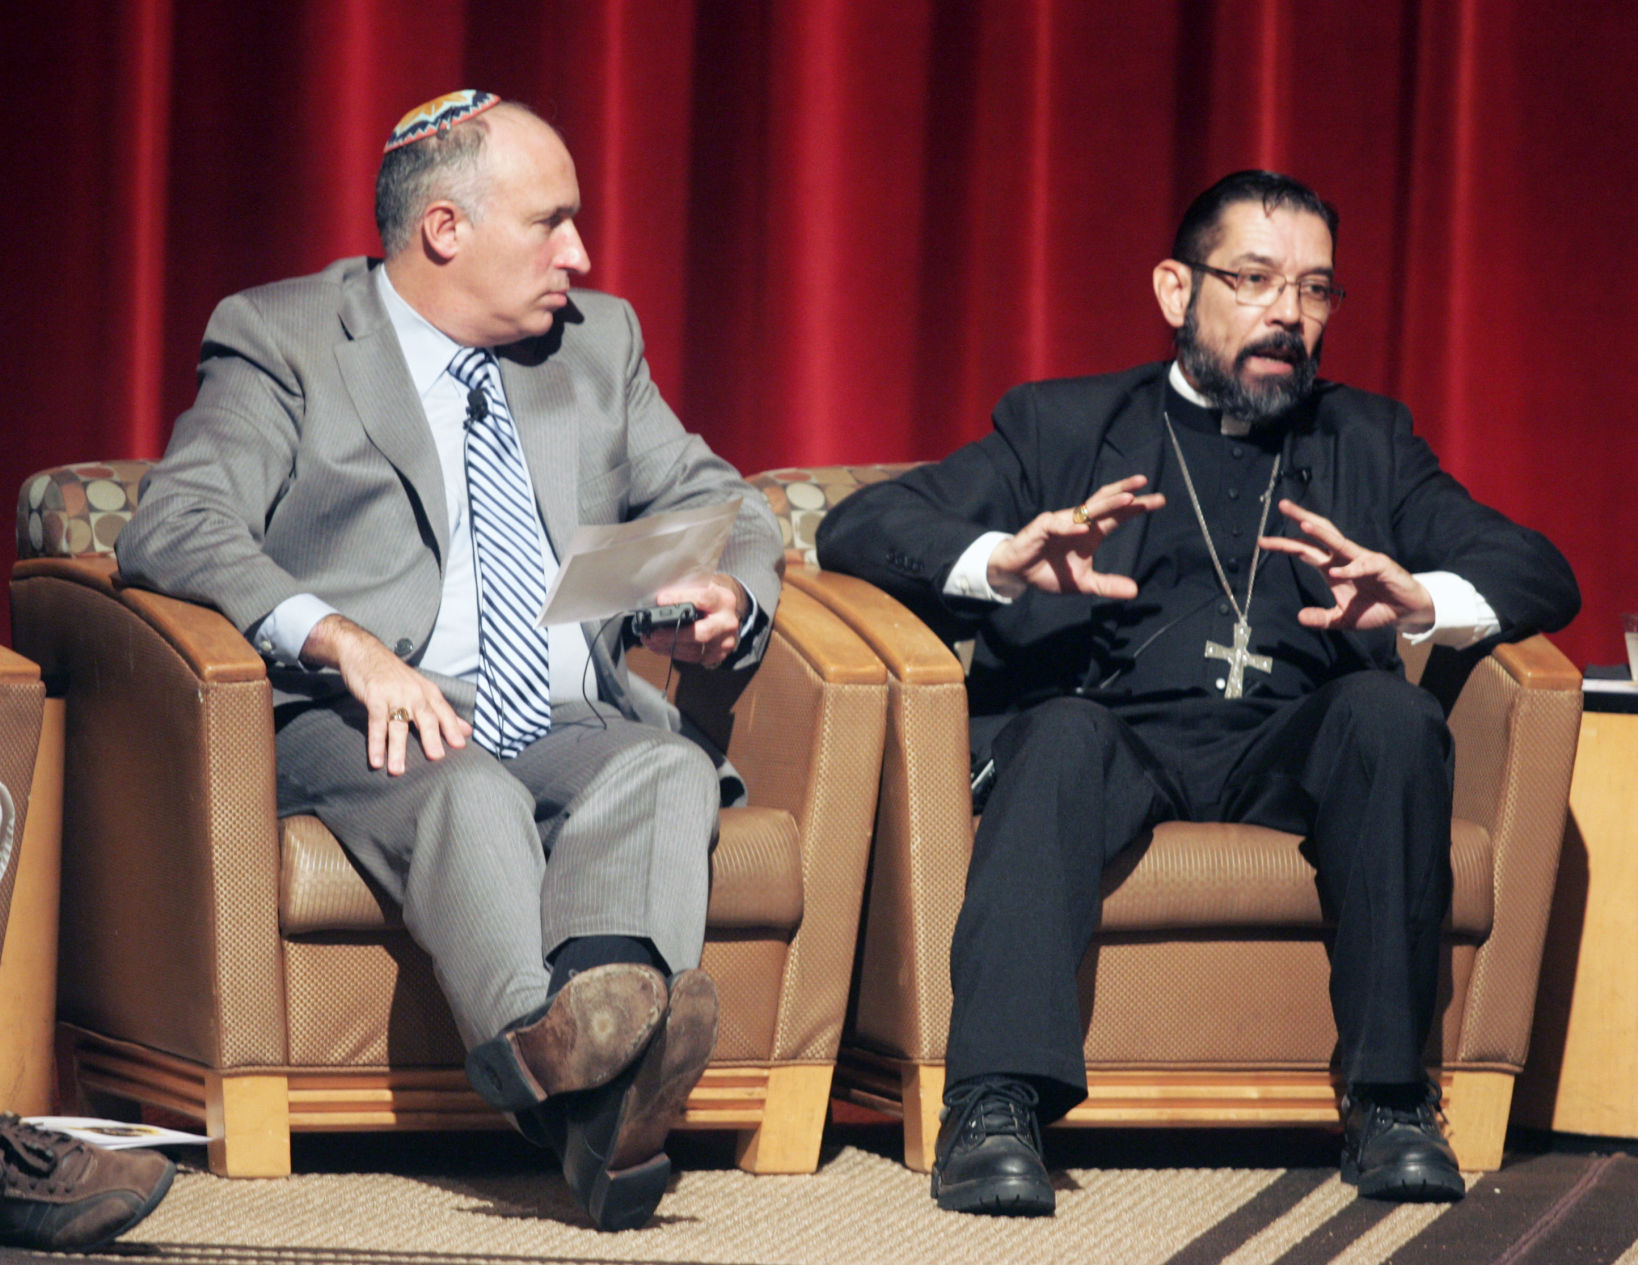 Religious leaders encourage education Image